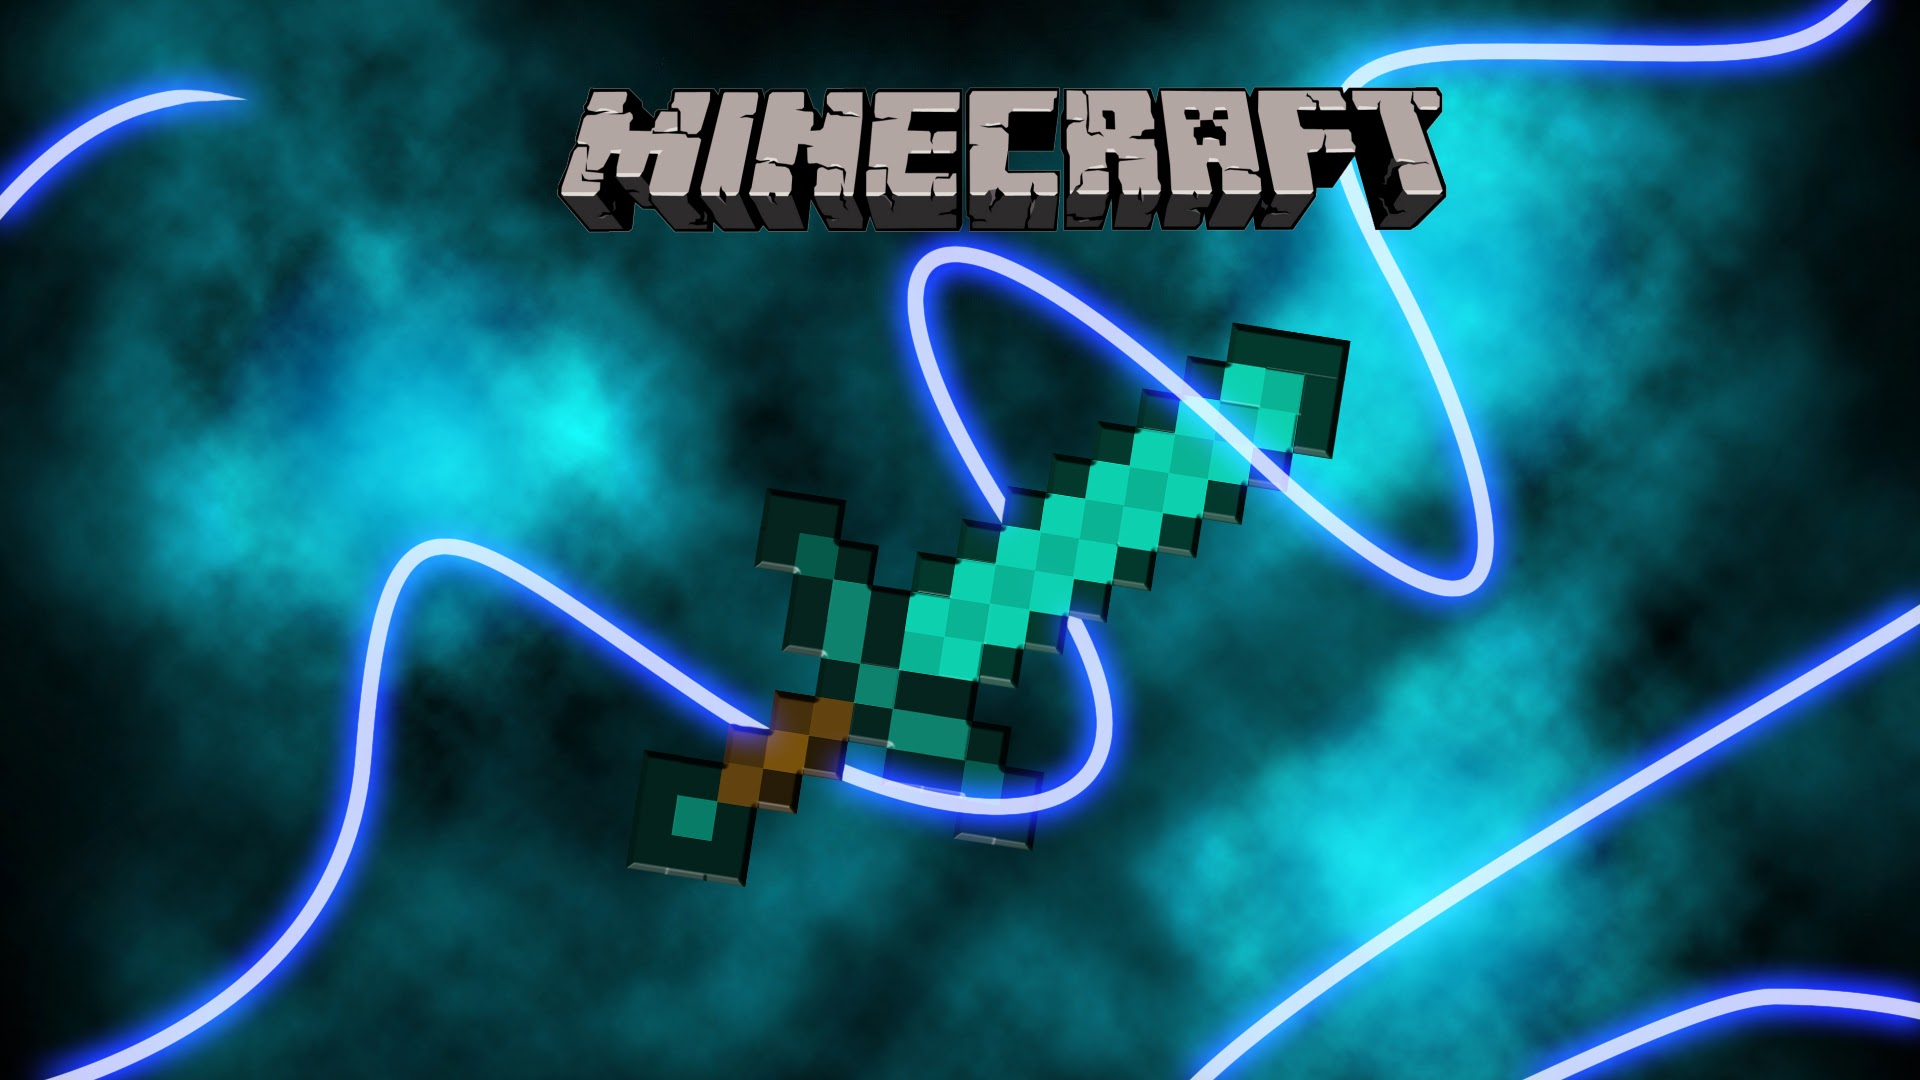 minecraft sword game wallpaper hd 1920x1080 a134 1920x1080